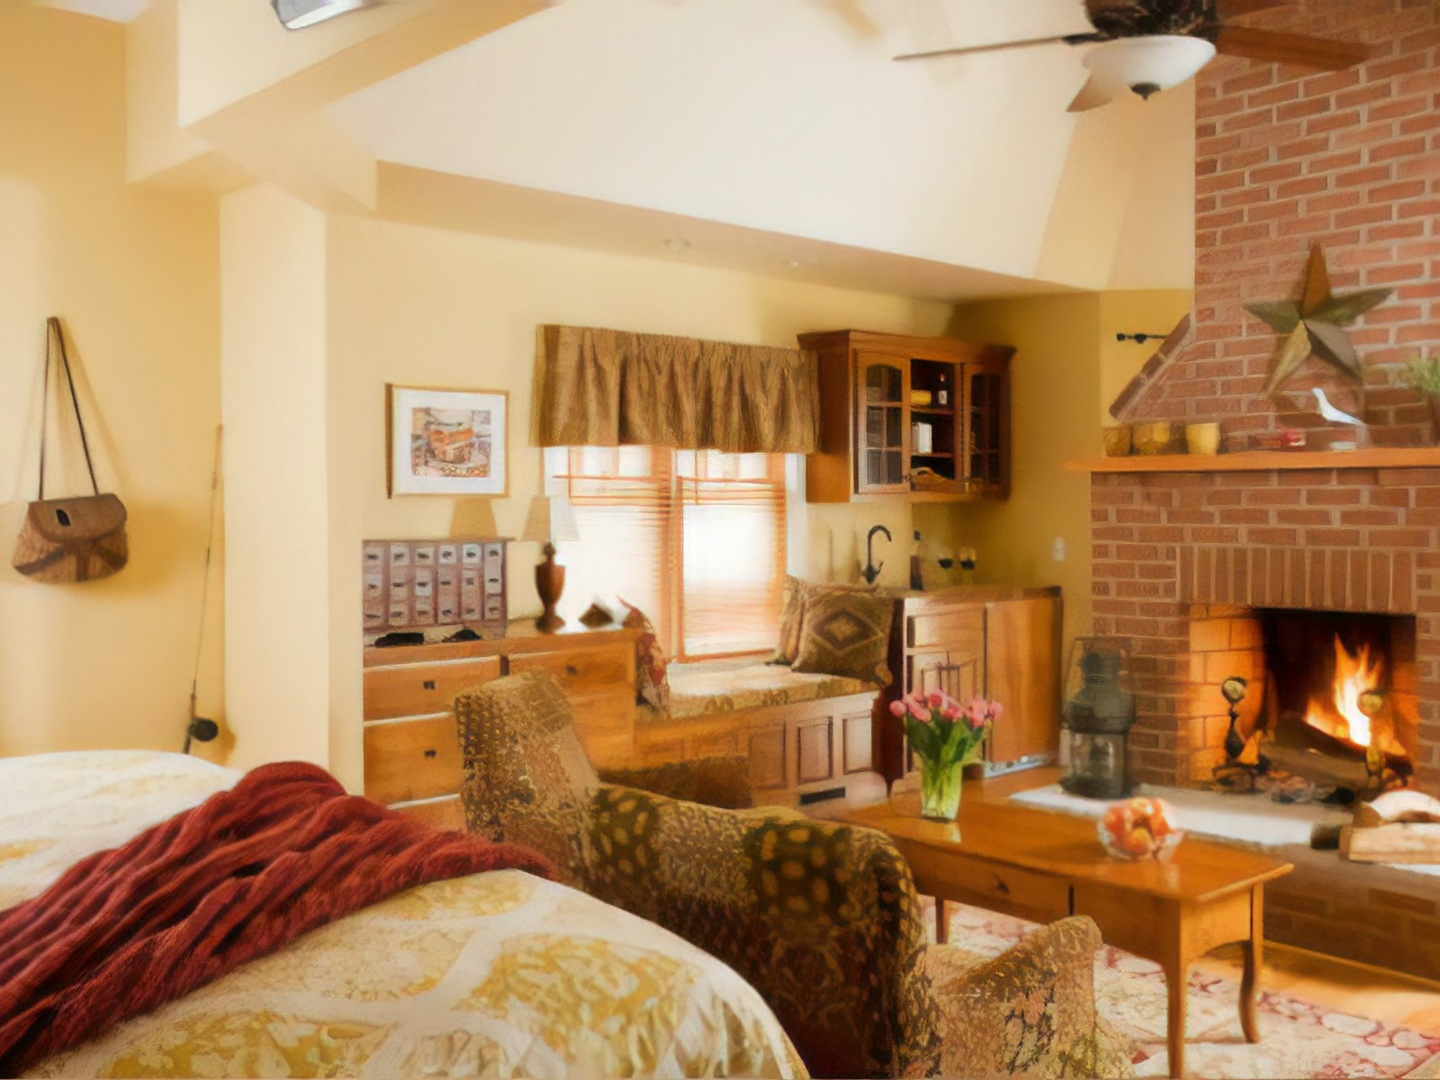 A living room with a bed and a fireplace at Brampton Bed and Breakfast Inn.